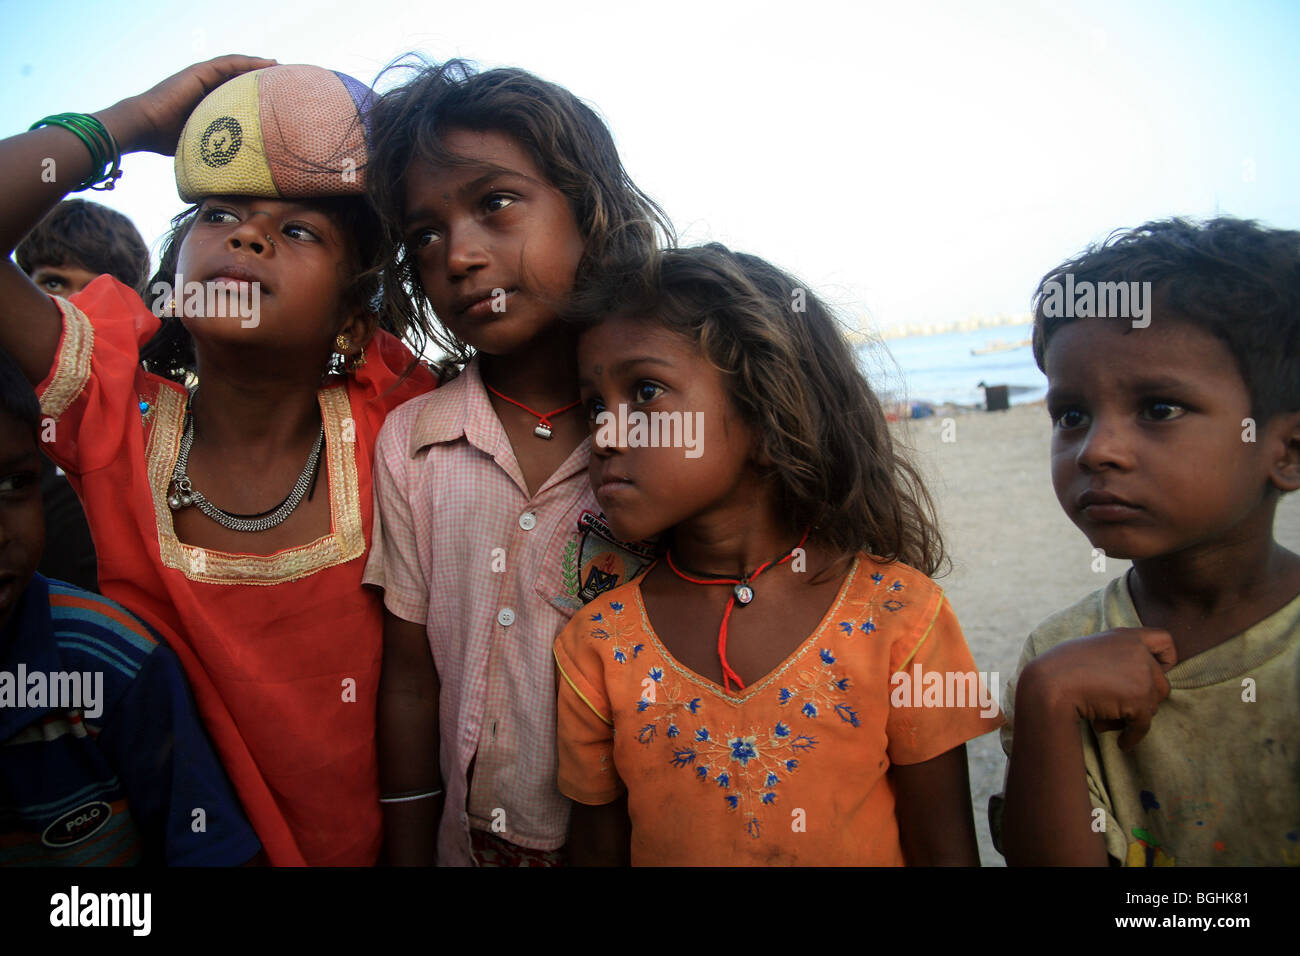 essay on street children in india